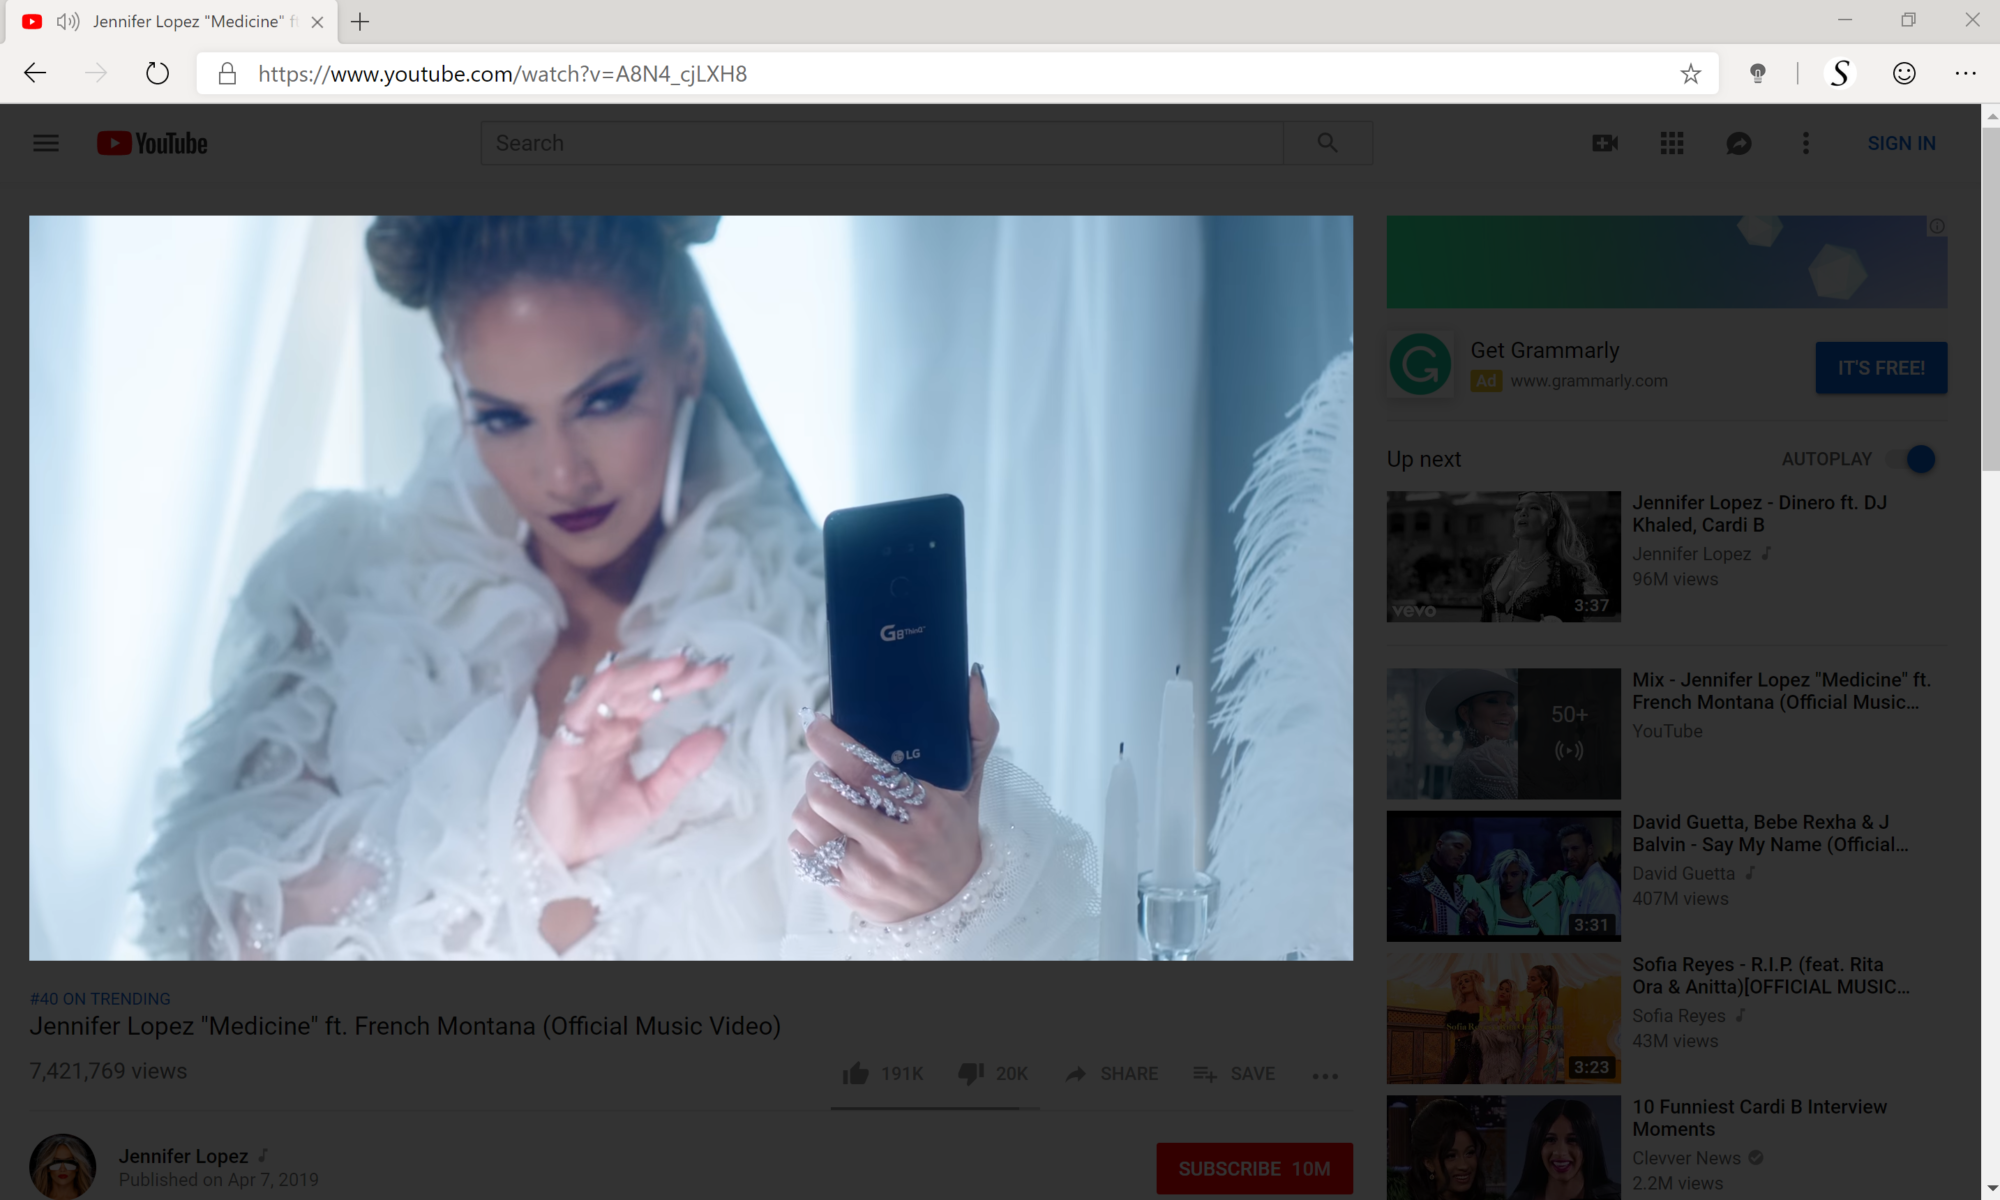 Turn Off the Lights Microsoft Edge extension Jennifer Lopez YouTube video